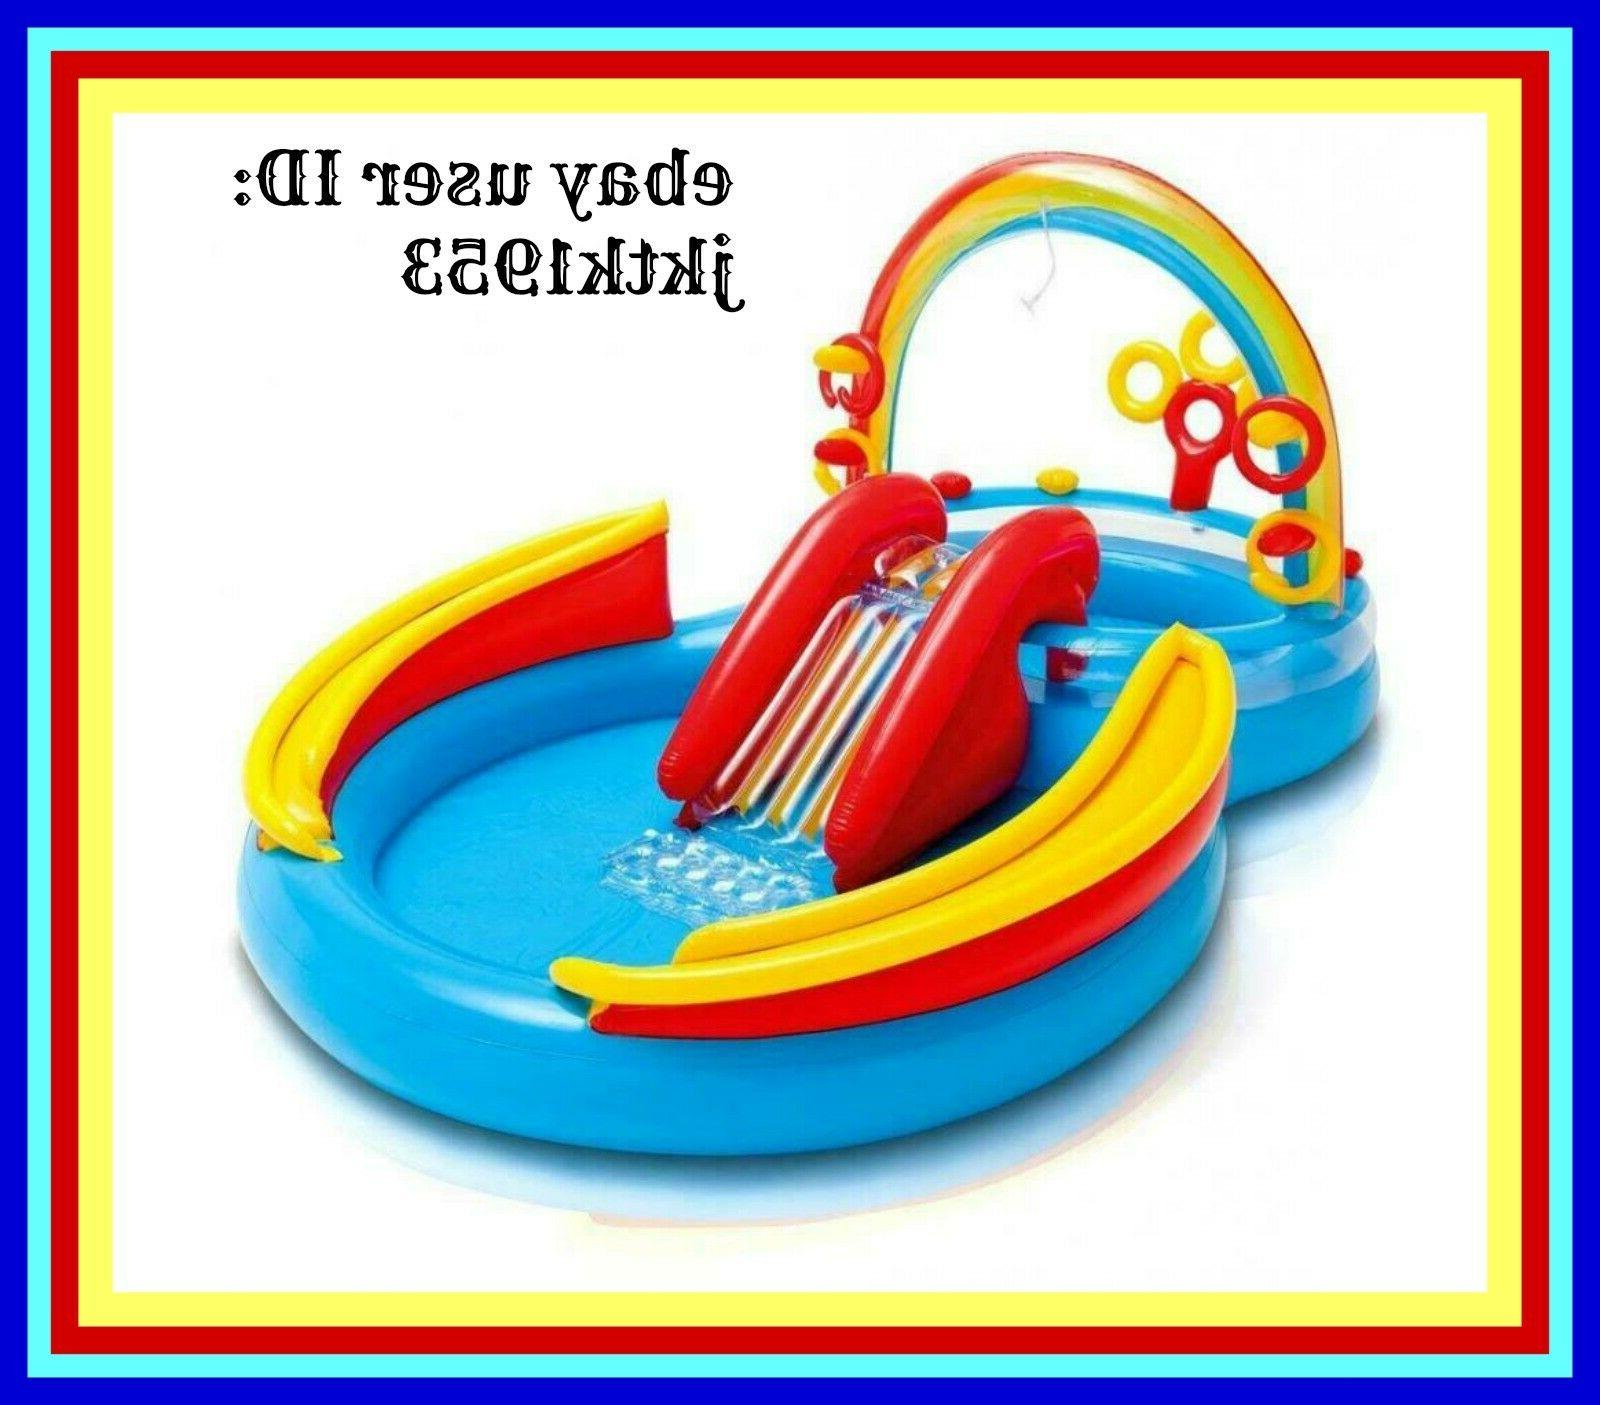 rainbow ring inflatable play center 117 x